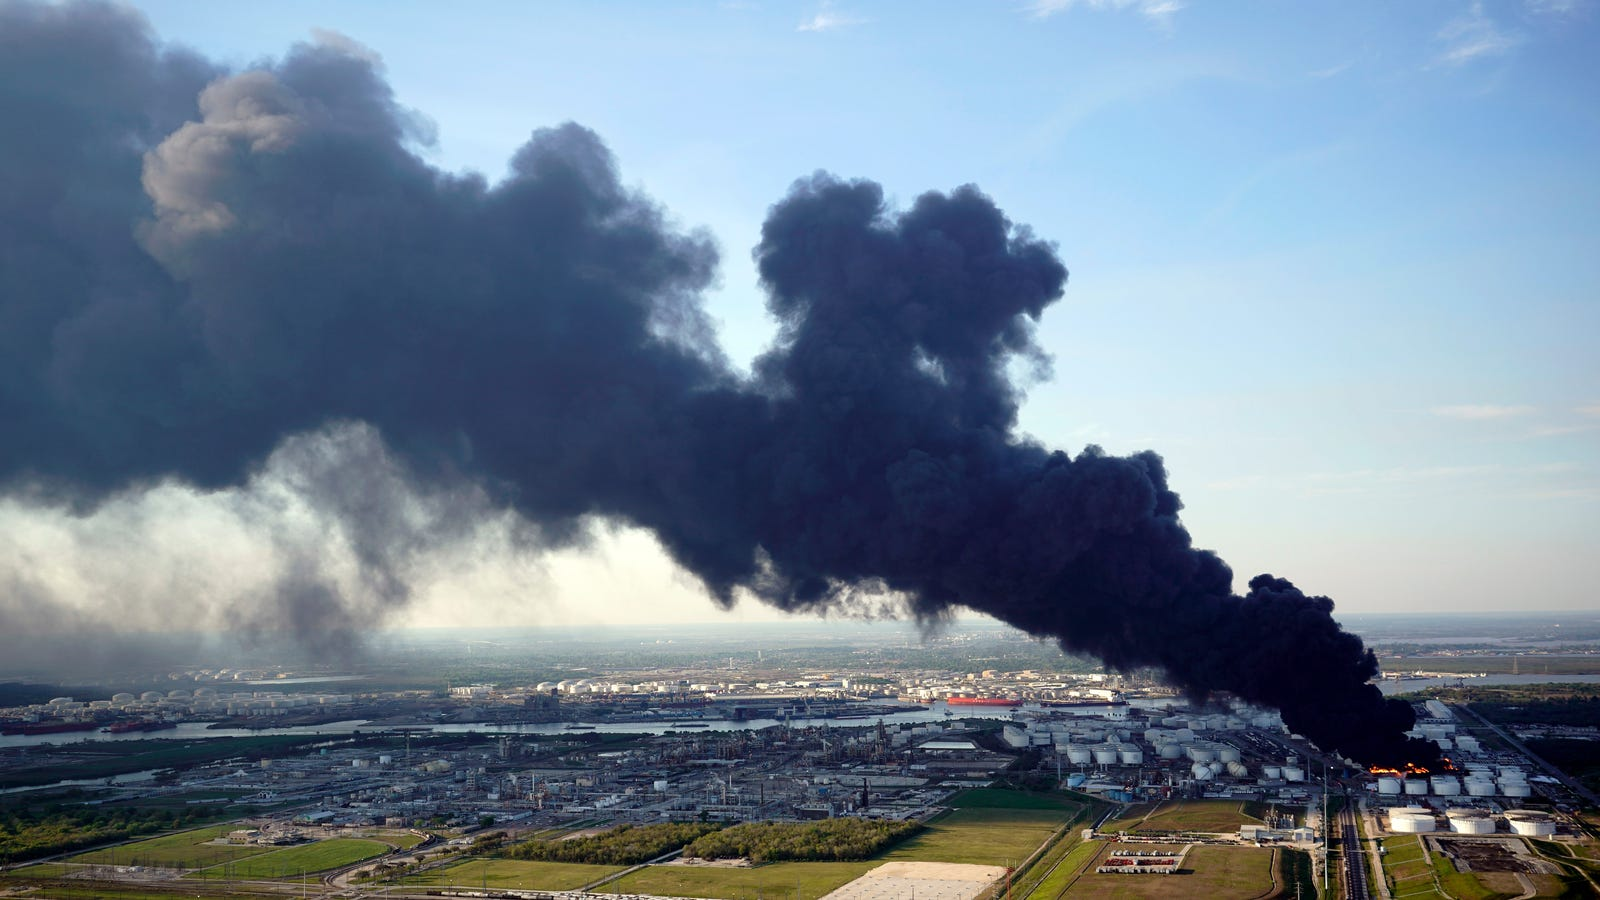 This Week's Giant Toxic Gas Cloud Over Houston Was a Symptom of a Much Bigger Problem